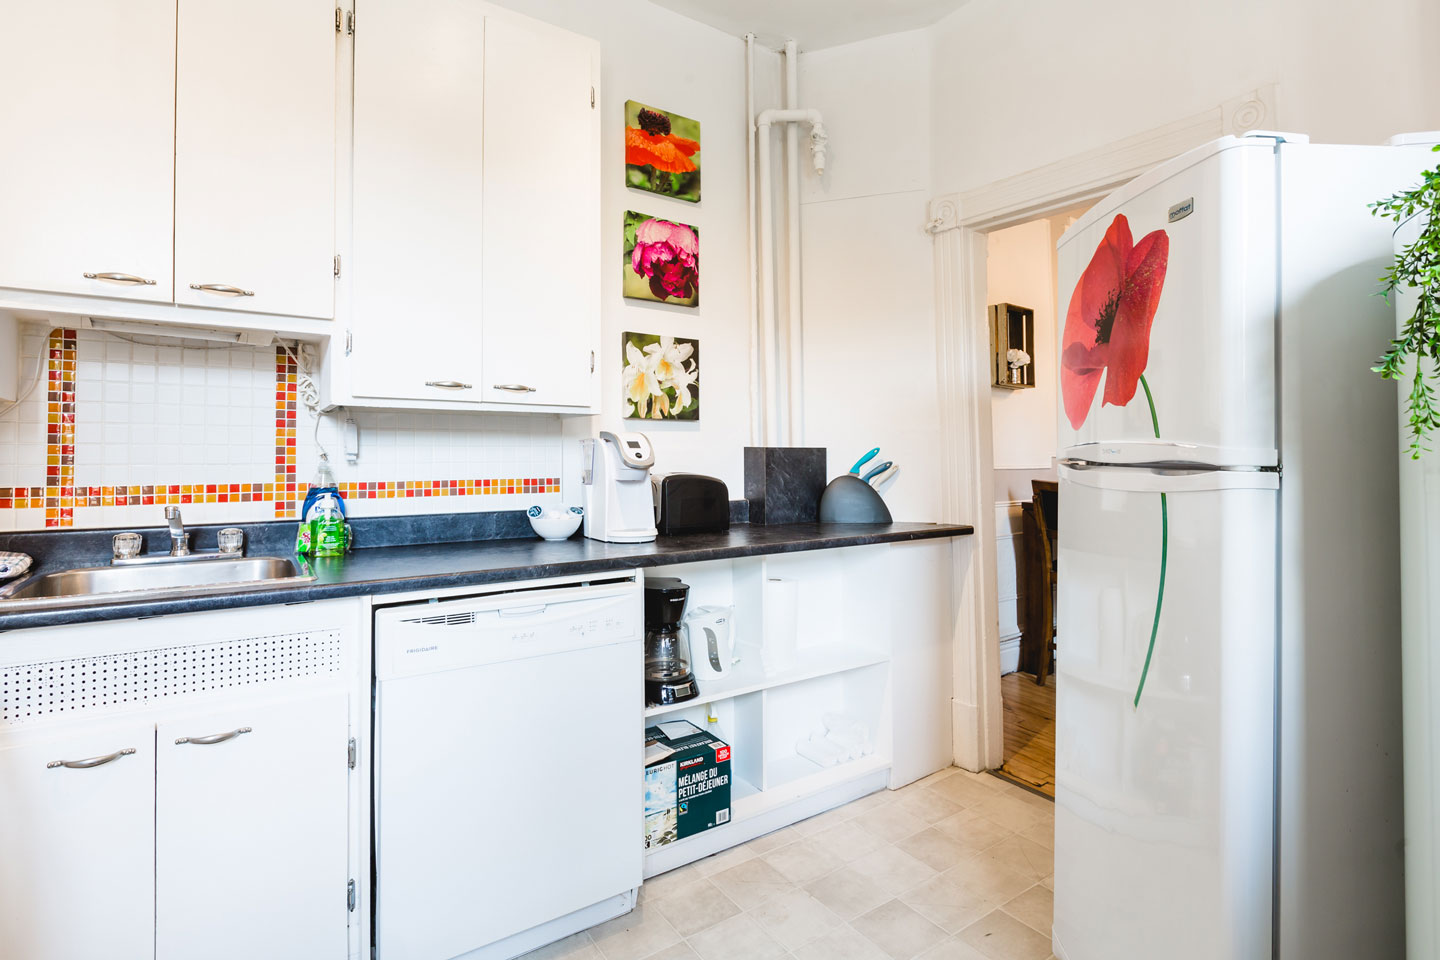 Château: fully equipped kitchen